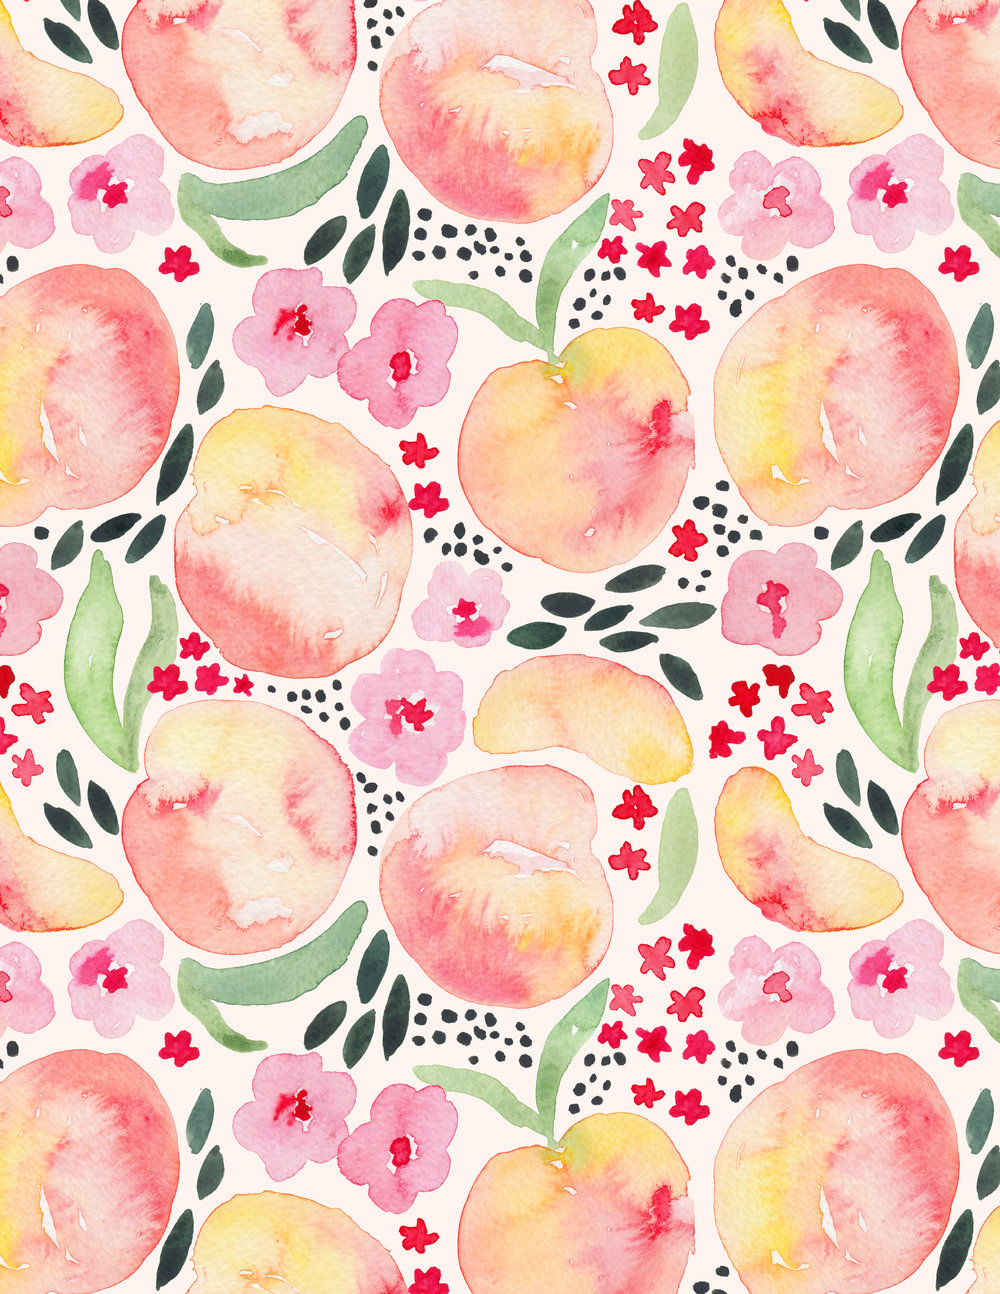 Juliet Meeks Paaches Watercolor Pattern